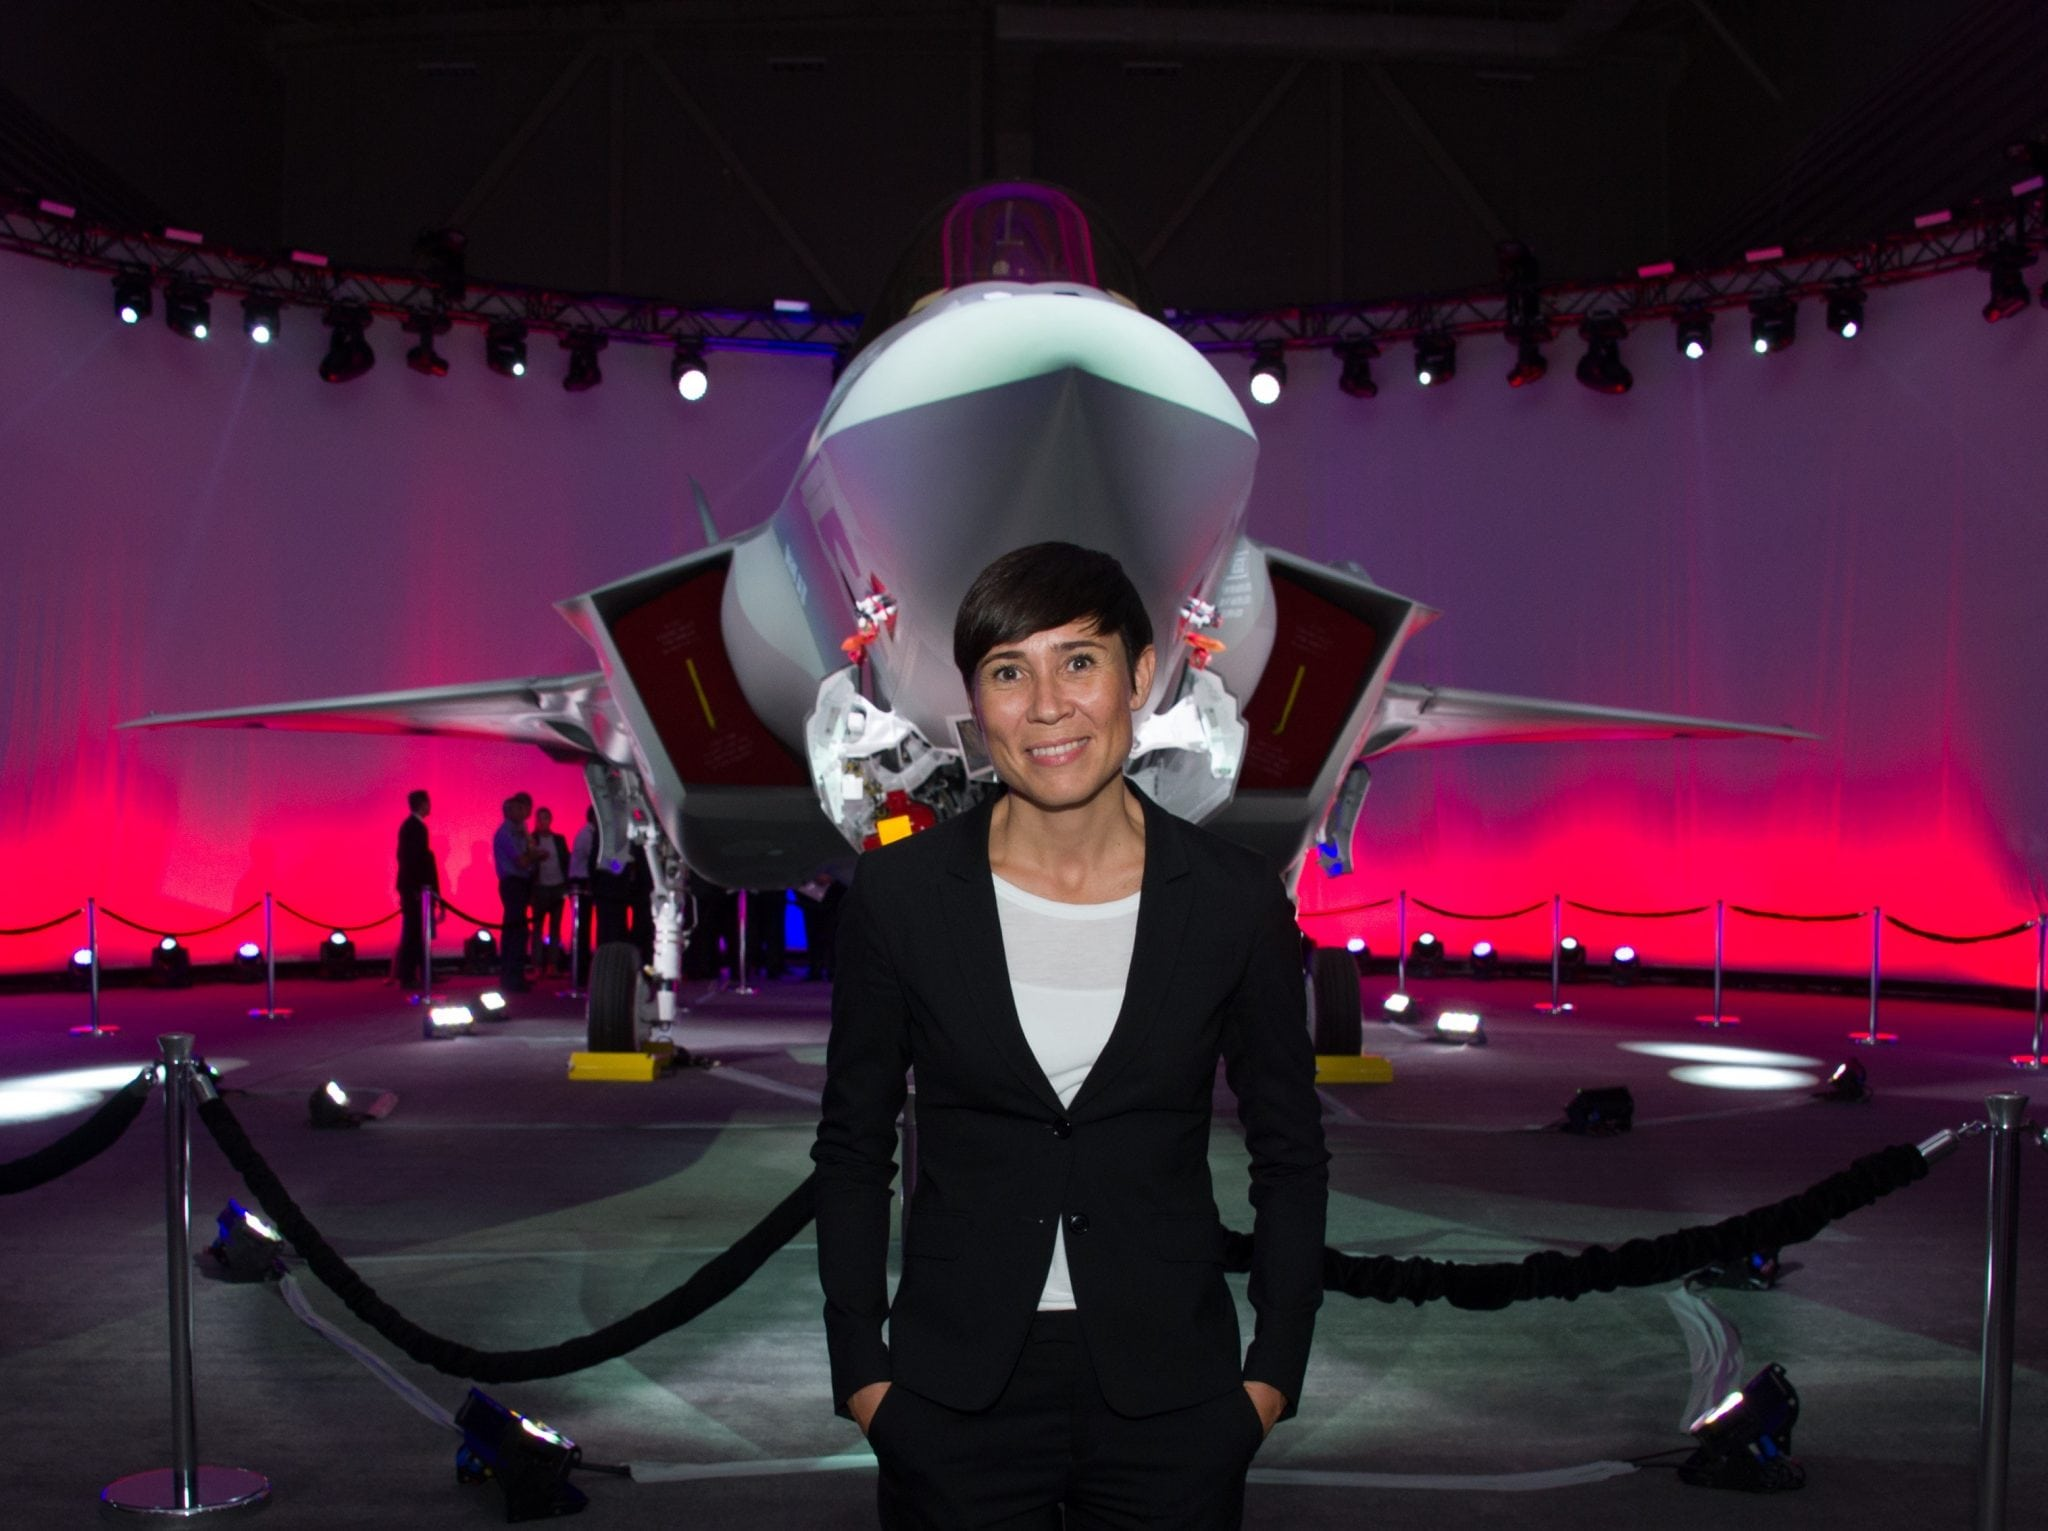 Norwegian Minister of Defence, Ine Eriksen Søreide, with the Norwegian Armed Force's first F-35A Lightning II, known as AM-1, at the Lockheed Martin F-35 production facility in Fort Worth, Texas